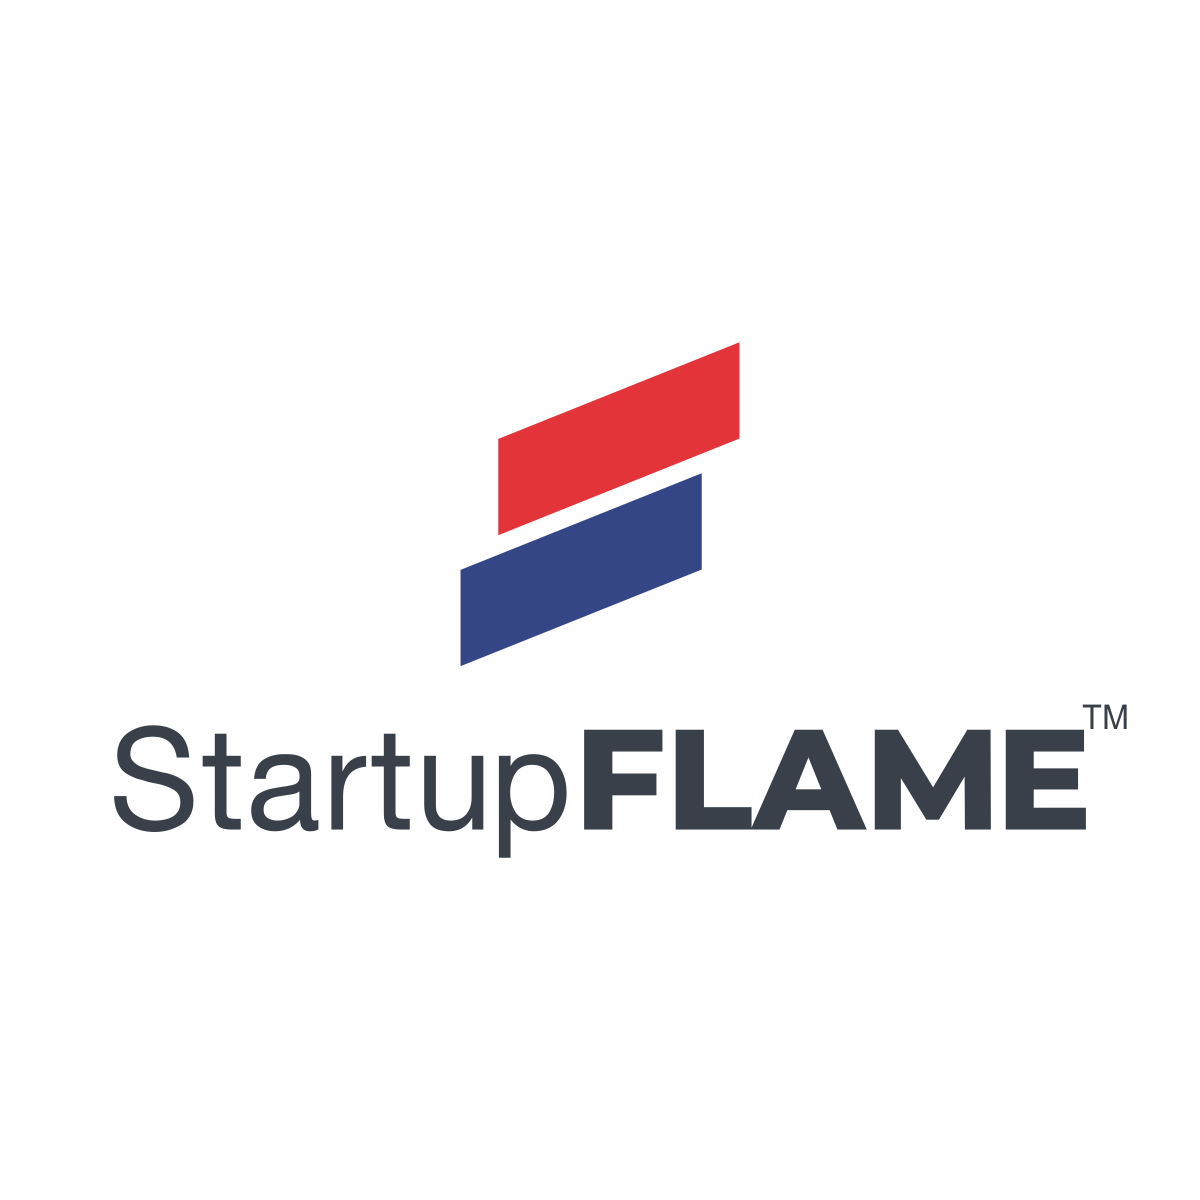 Startup Flame